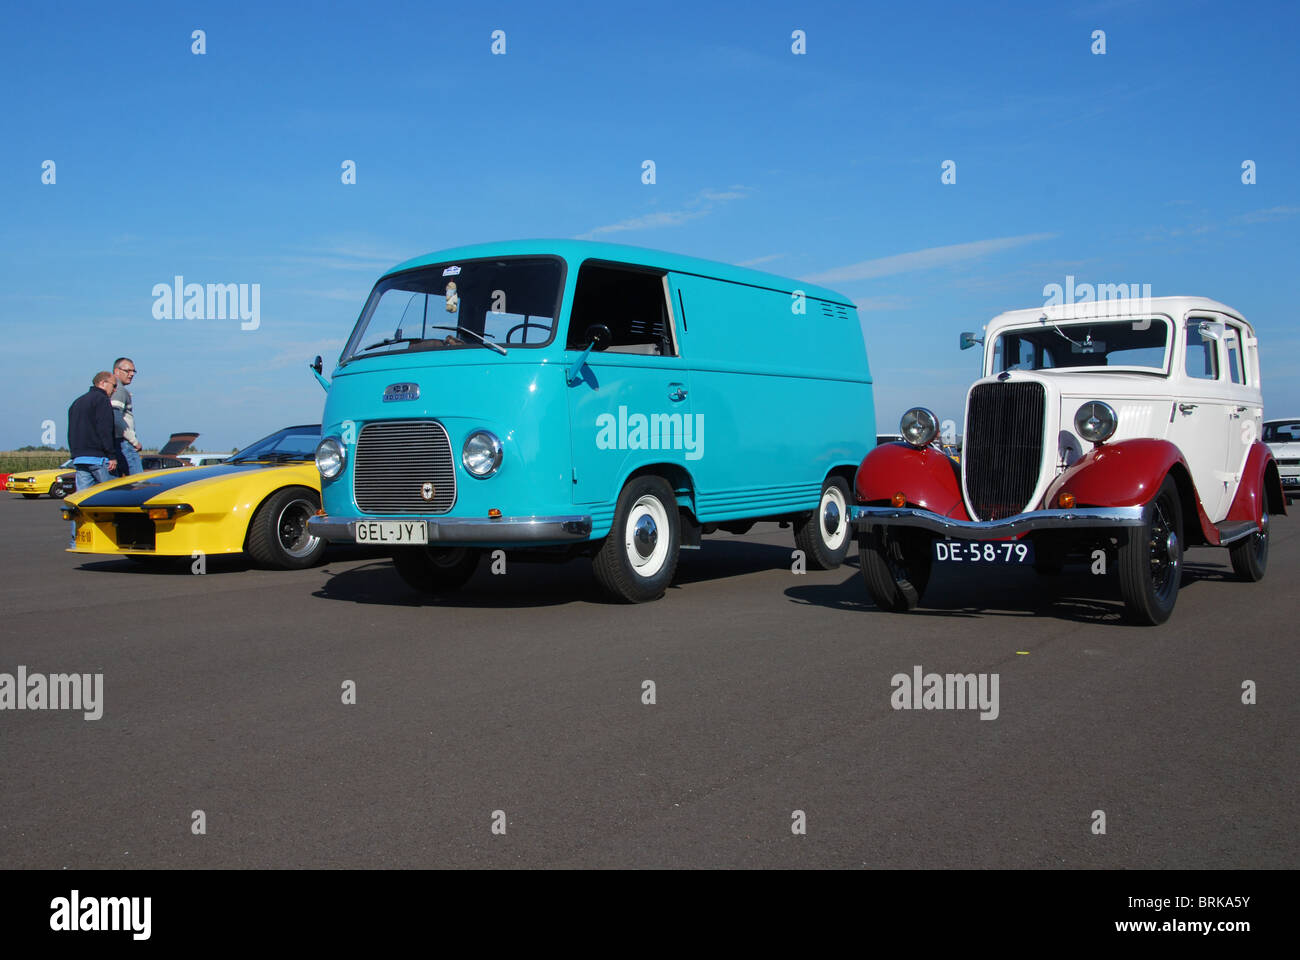 Ford cars from different eras on display, among them a German registered Ford Taunus utility van and a 1930s Ford - Stock Image